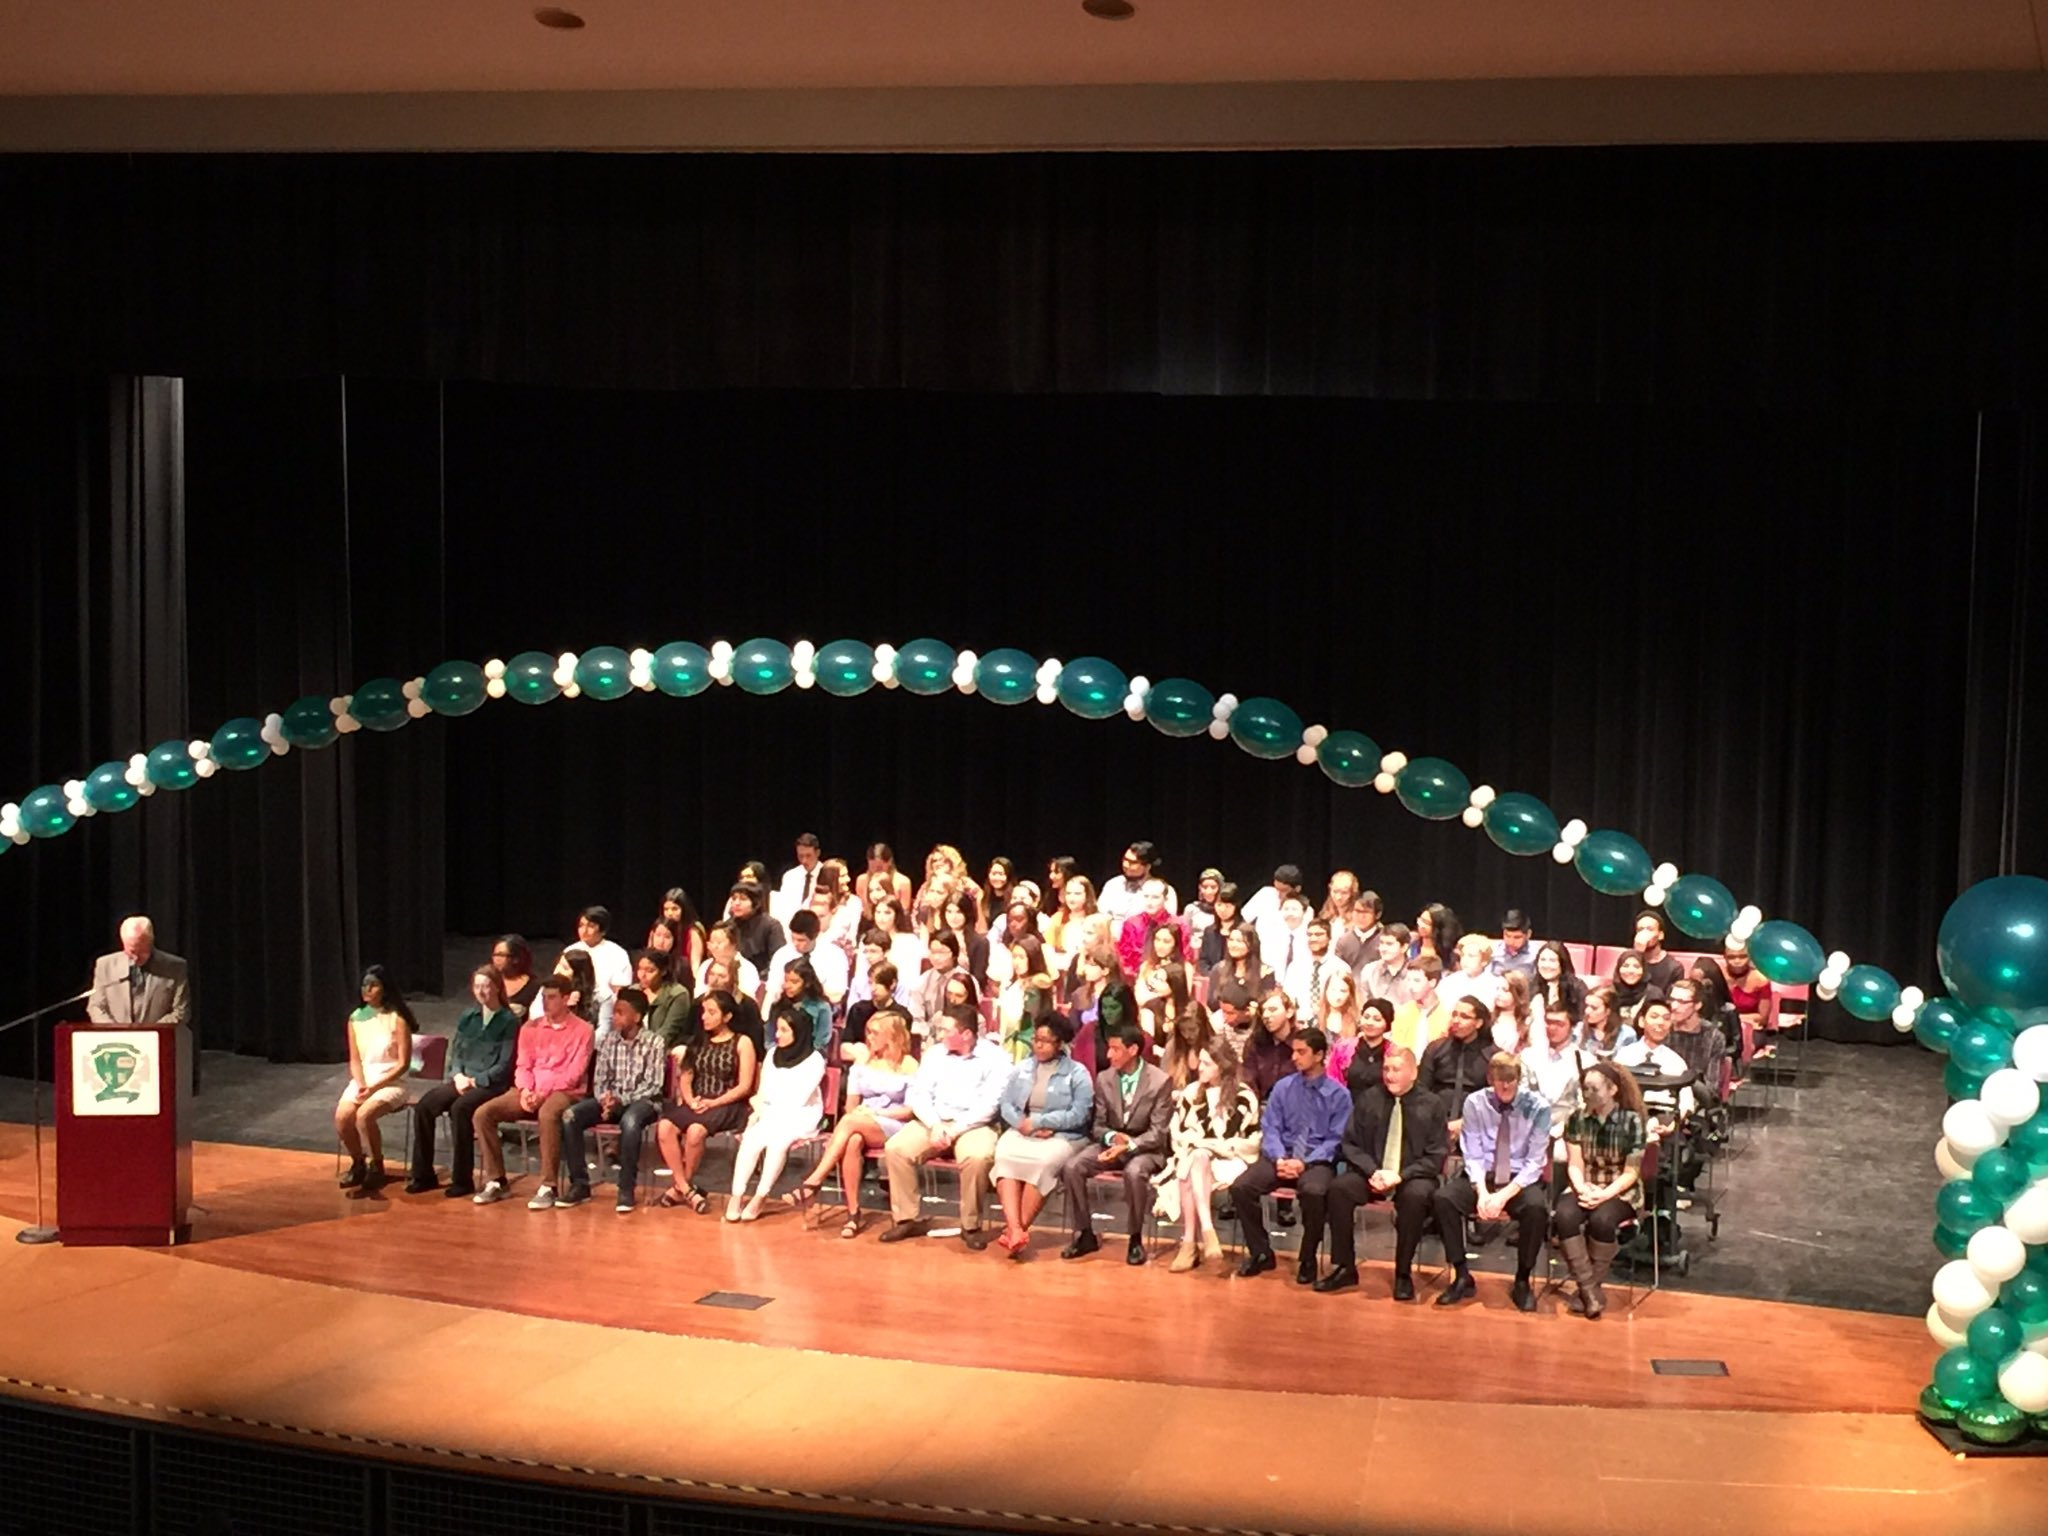 Dublin Scioto Celebration of Excellence Honorees for 2017. Congratulations on all your accomplishments! #theDublinDifference https://t.co/Ry3KF8cq7G